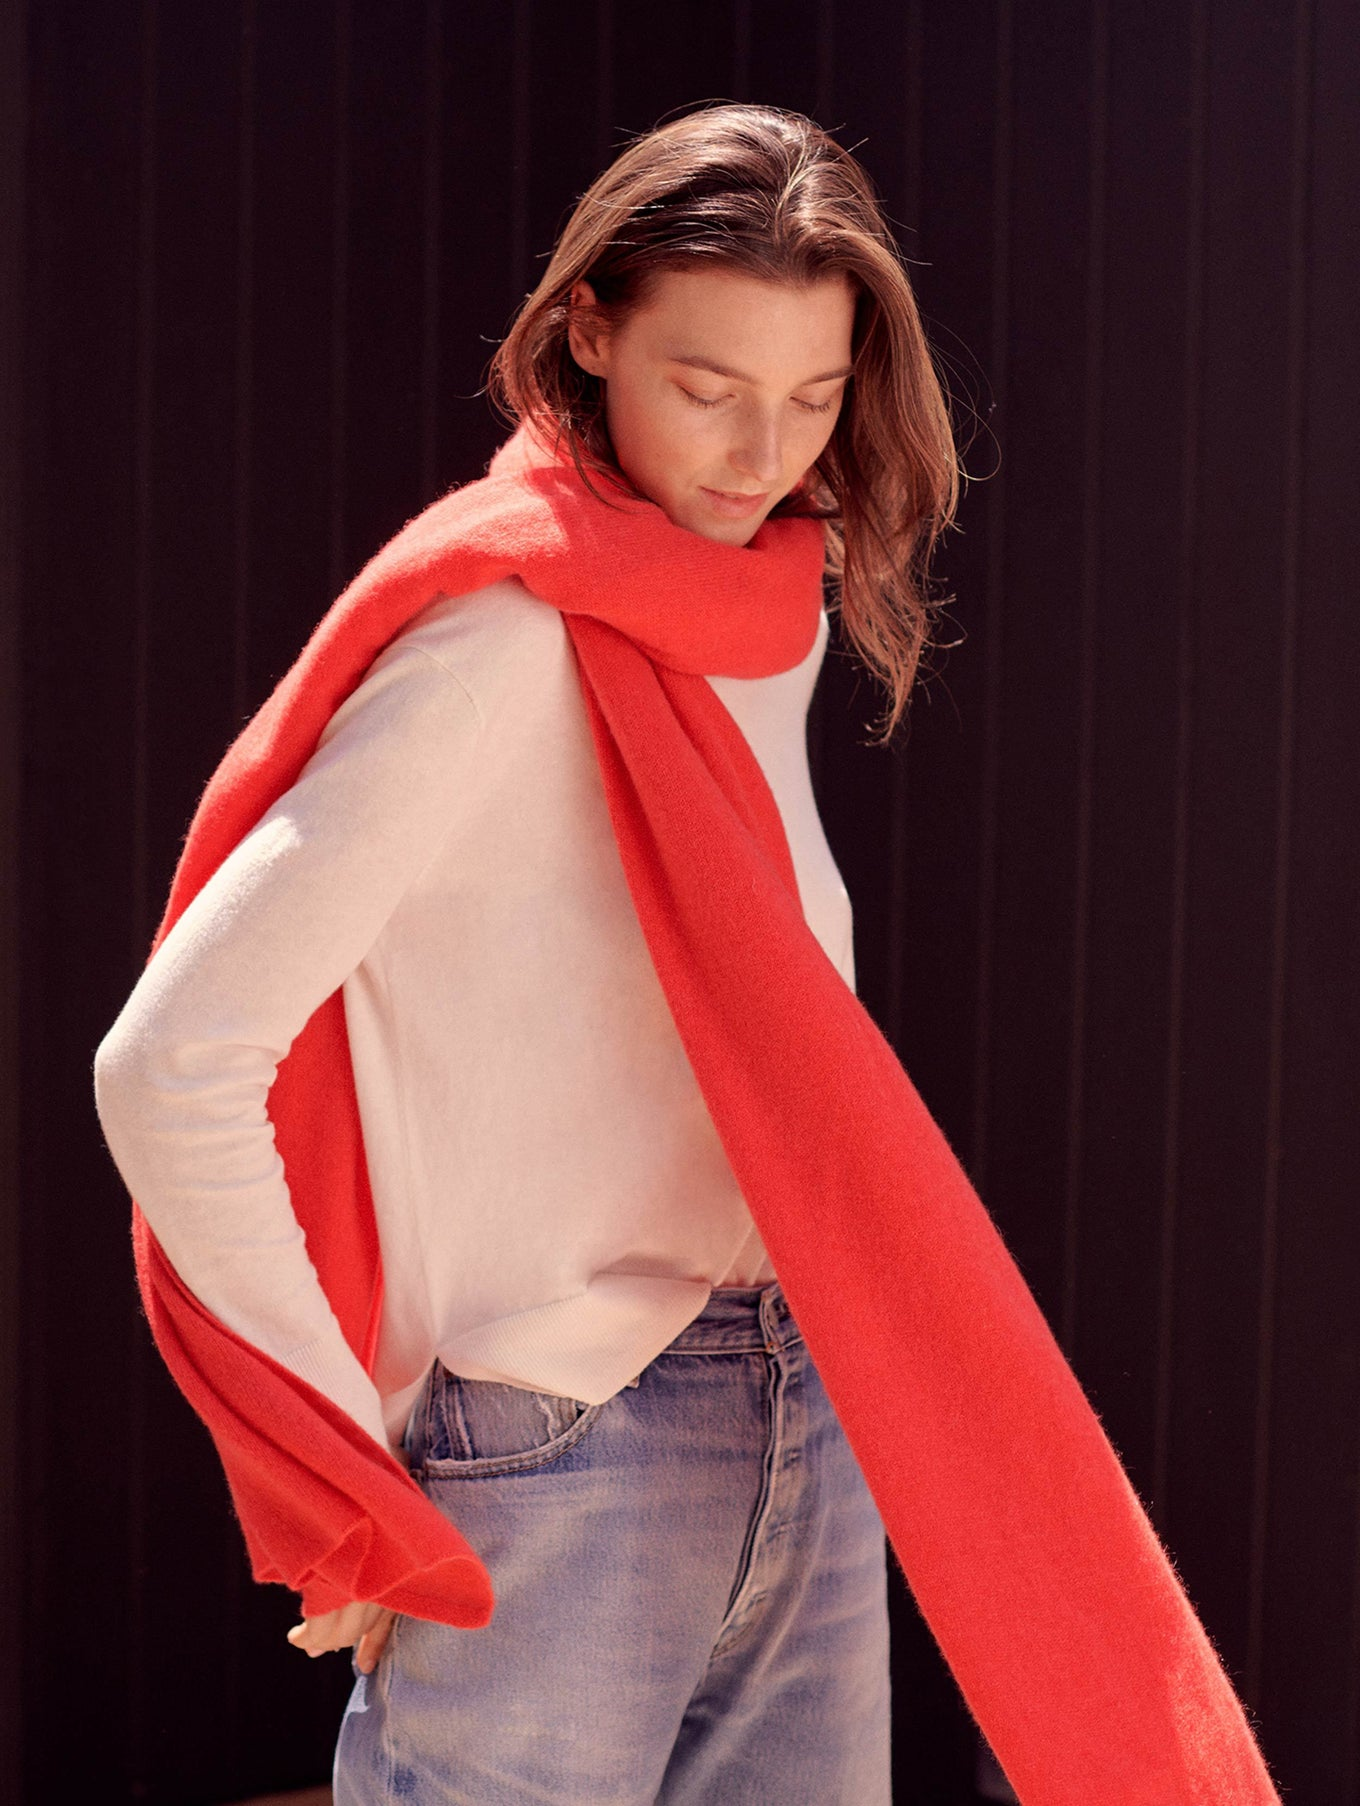 Cashmere Travel Wrap - Sunset Red Heather - Image 2